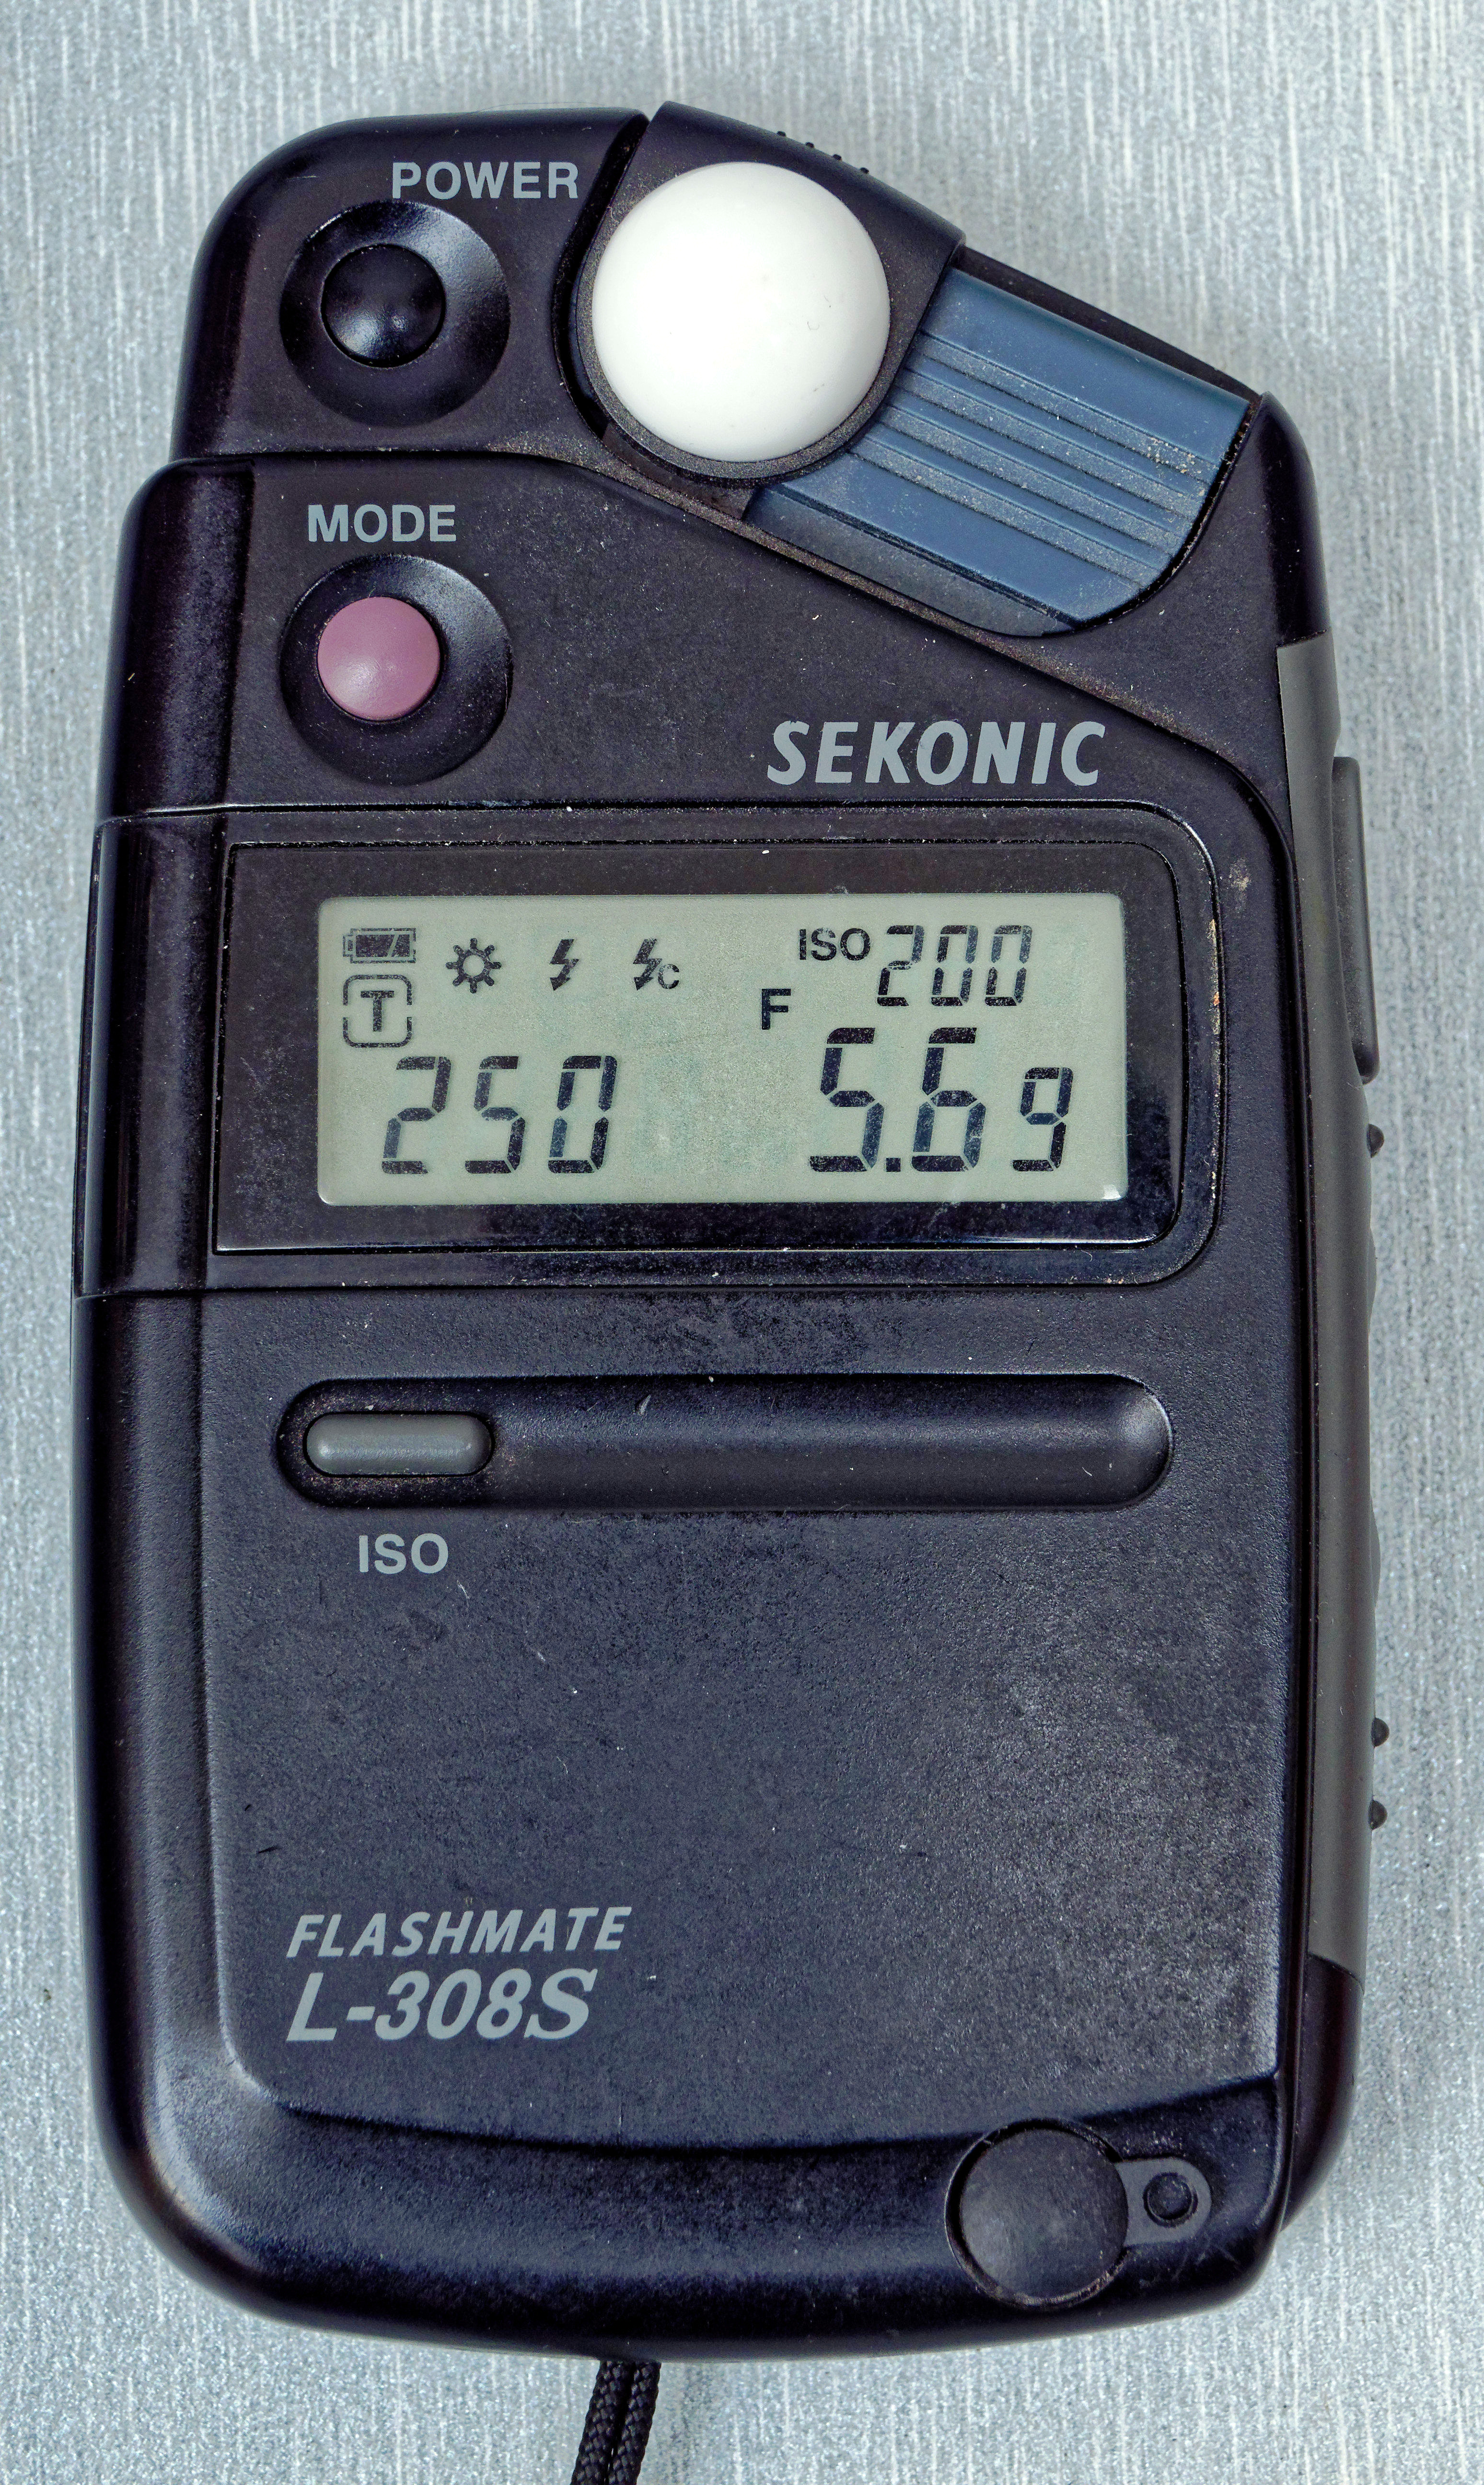 This should be Sekonic-L-308S-1.jpeg.  Is it missing?